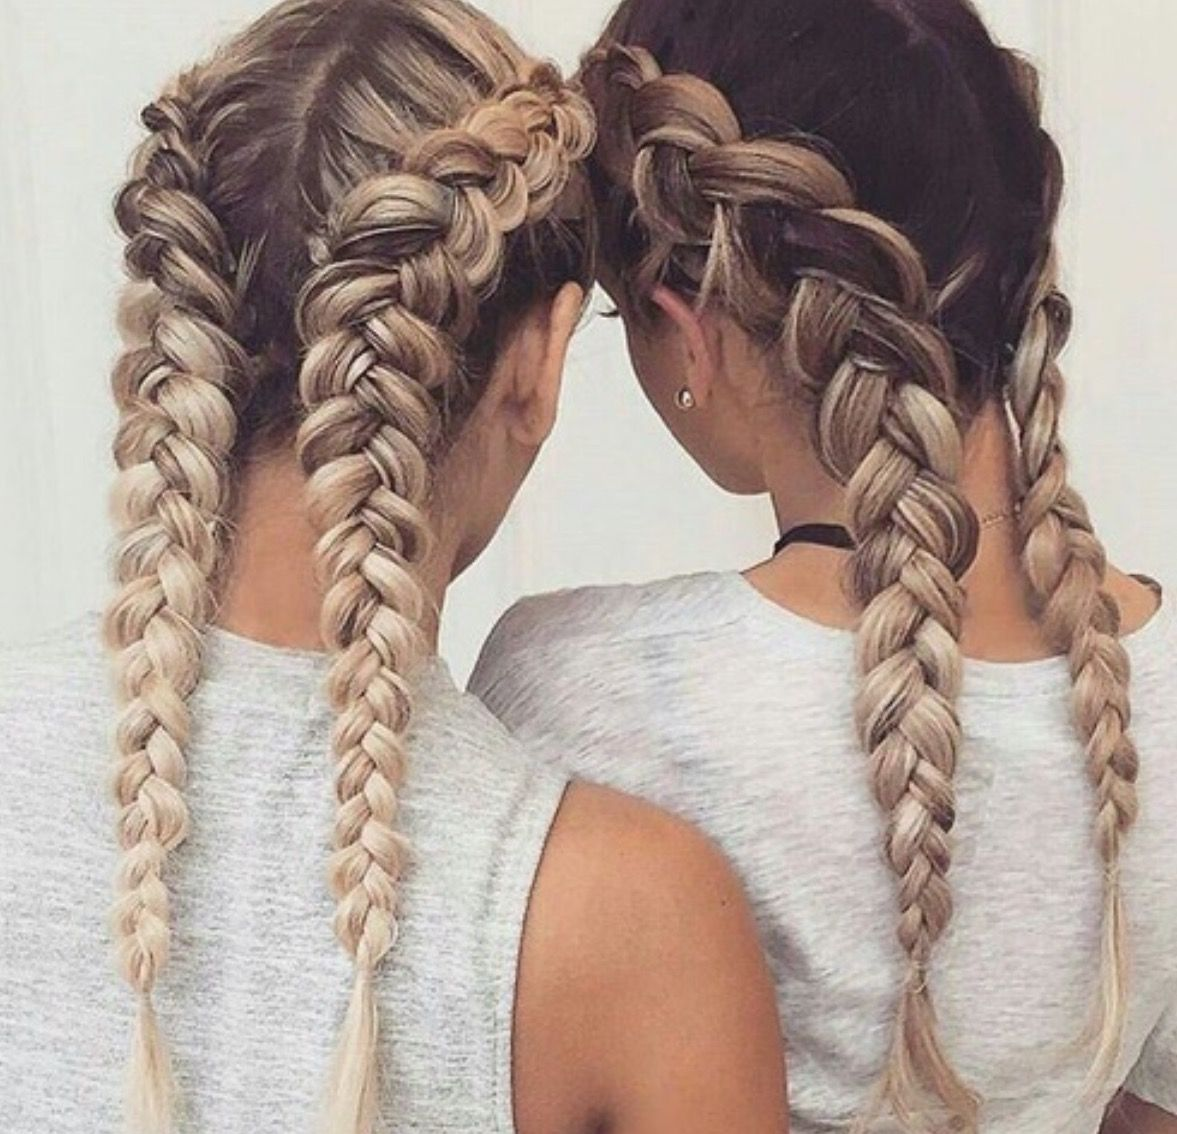 Two Loose Boxer Braids On Long Highlighted Hair Looks Even Better With The Braids Teased And Pulled Apart Hair Styles Curly Hair Styles Long Hair Styles